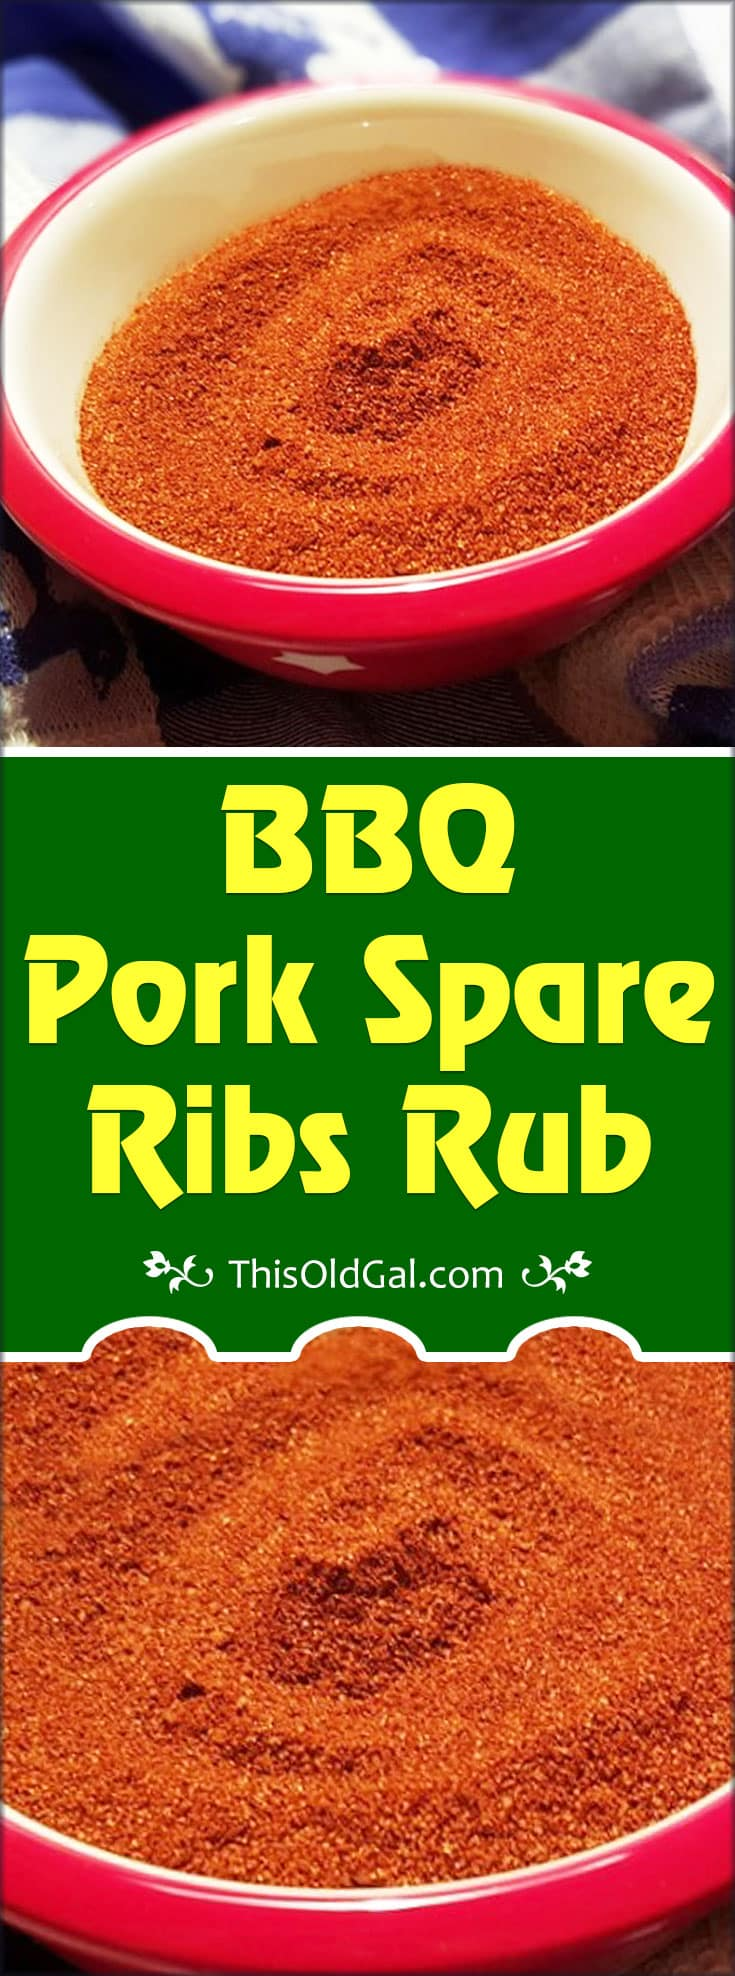 BBQ Pork Spare Ribs Rub